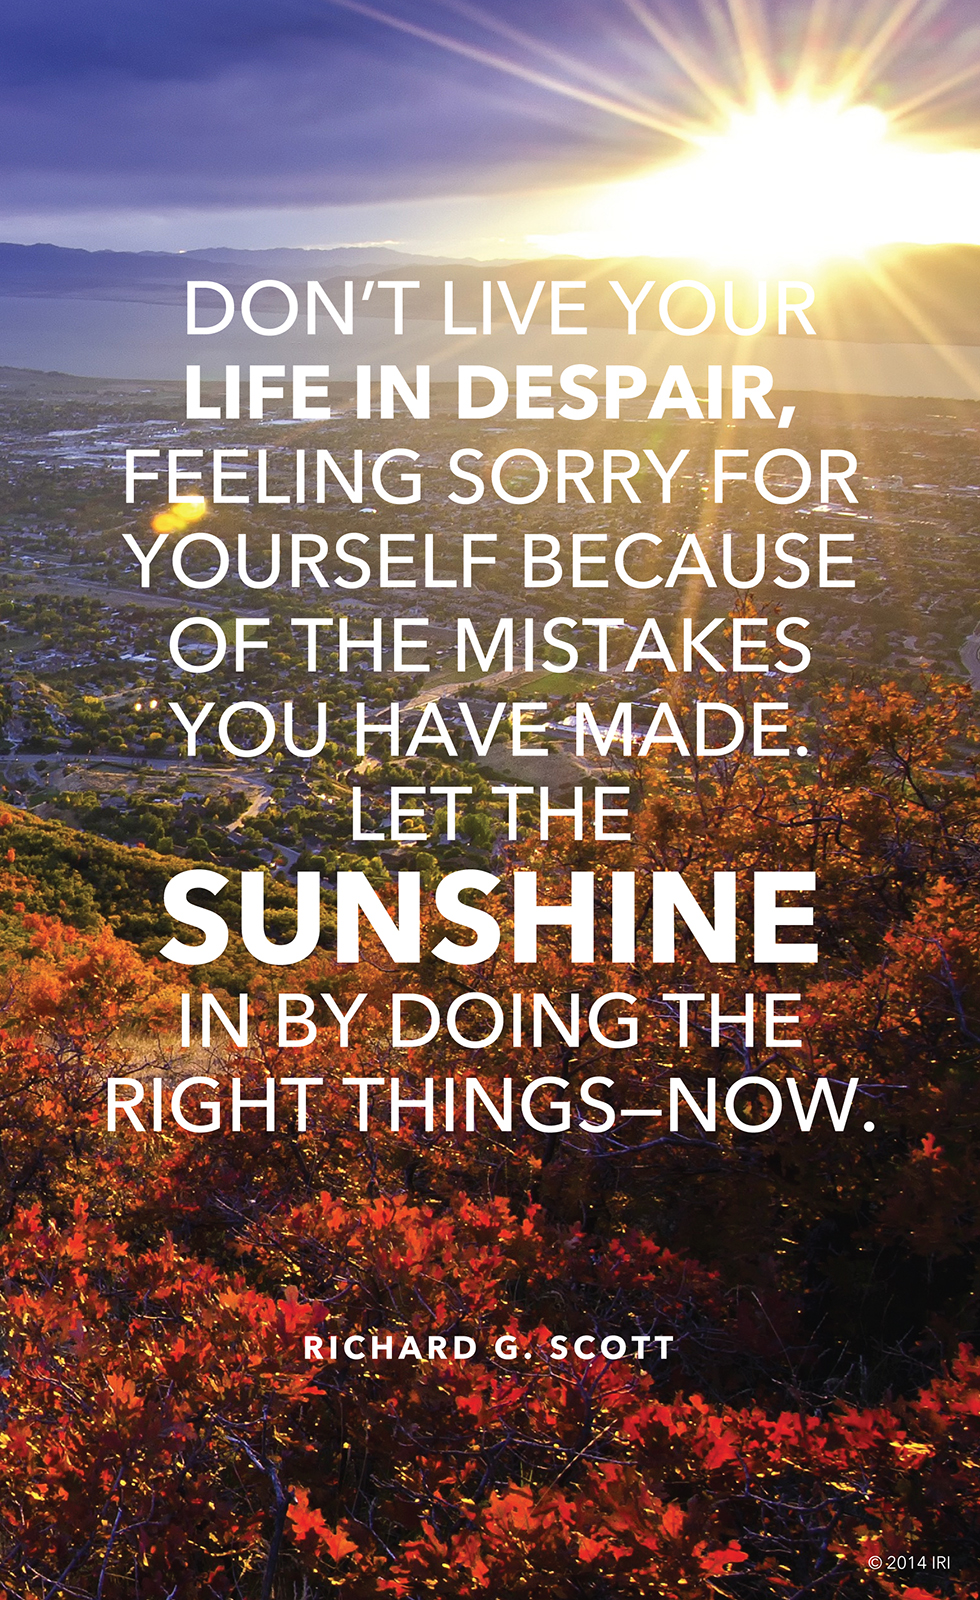 Sunshine In Your Life - HD Wallpaper